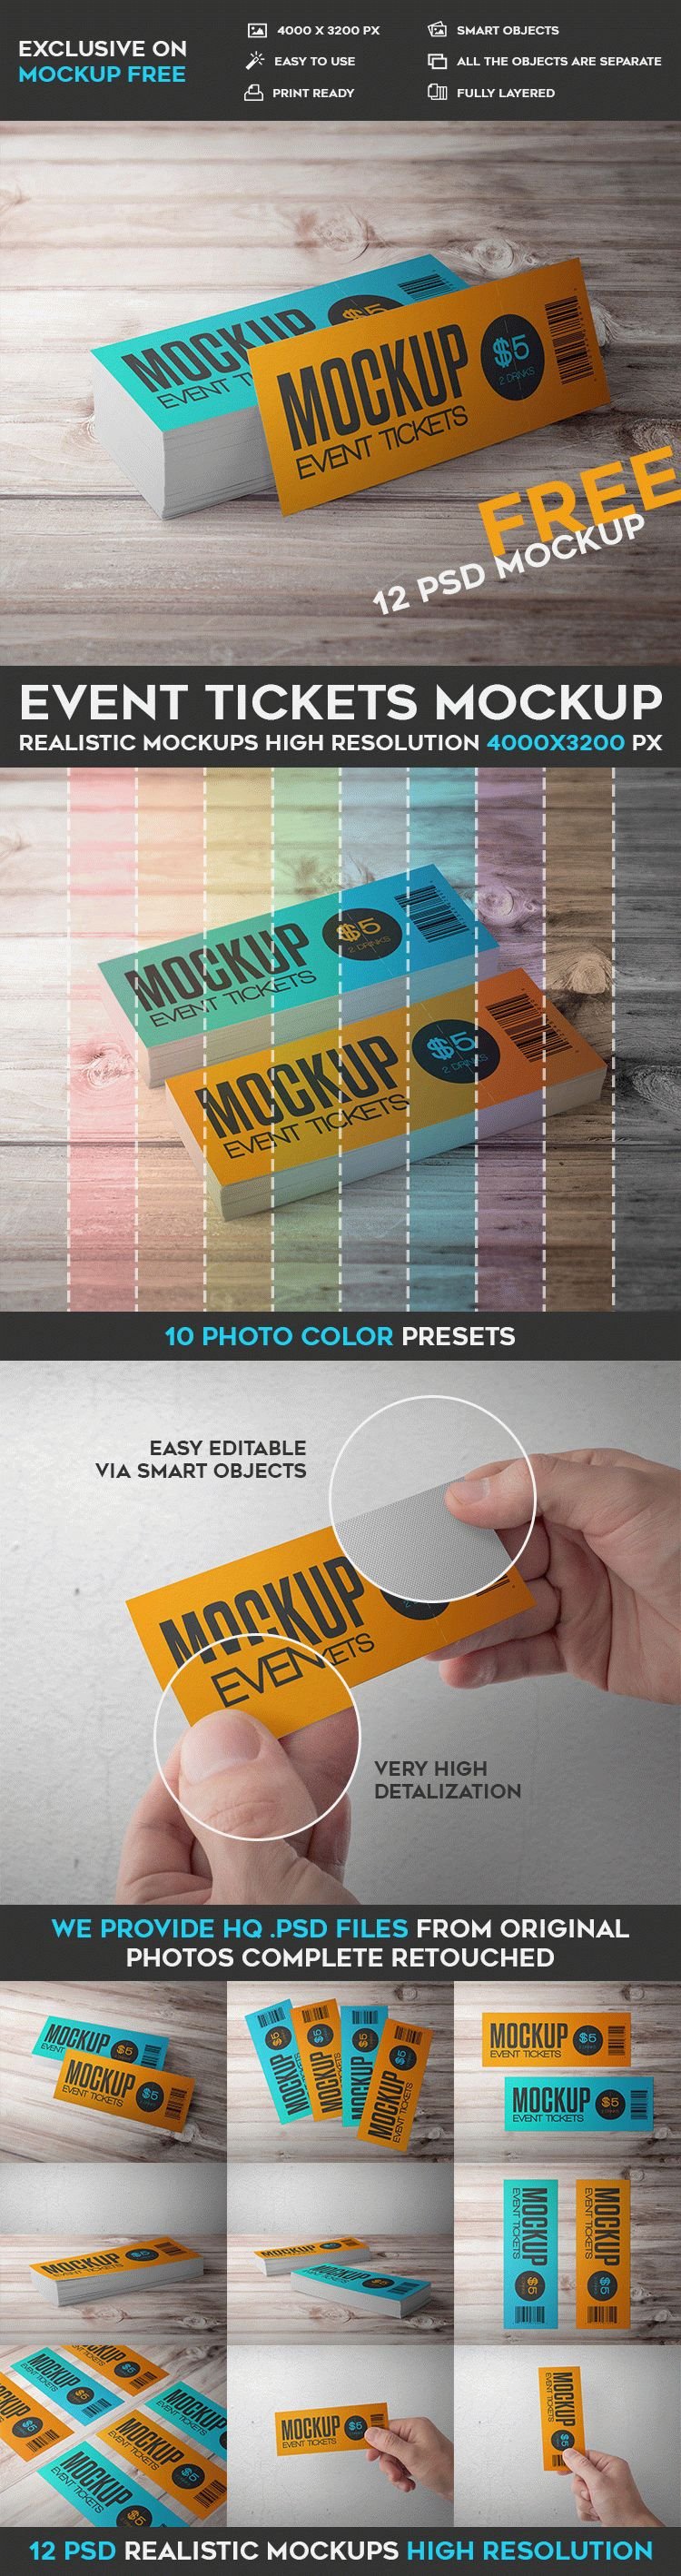 Event Tickets 12 Free PSD Mockups – How to Make Tickets for an Event Free